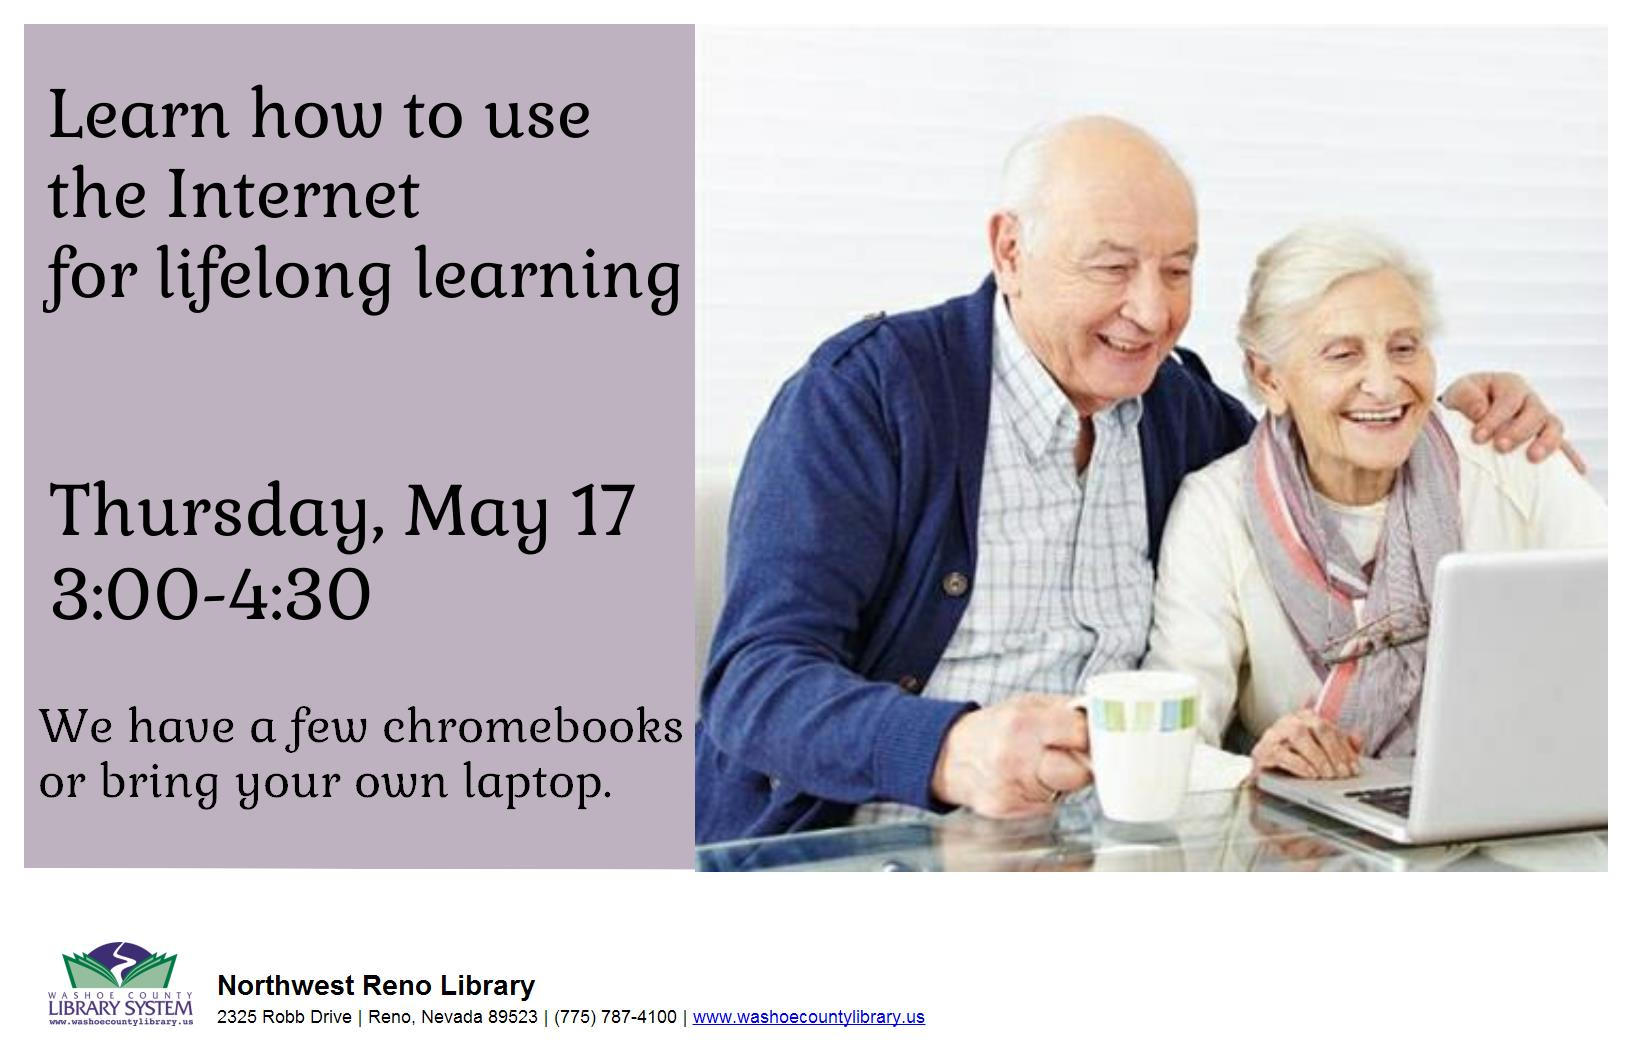 Learn How to Use the Internet for Lifelong Learning